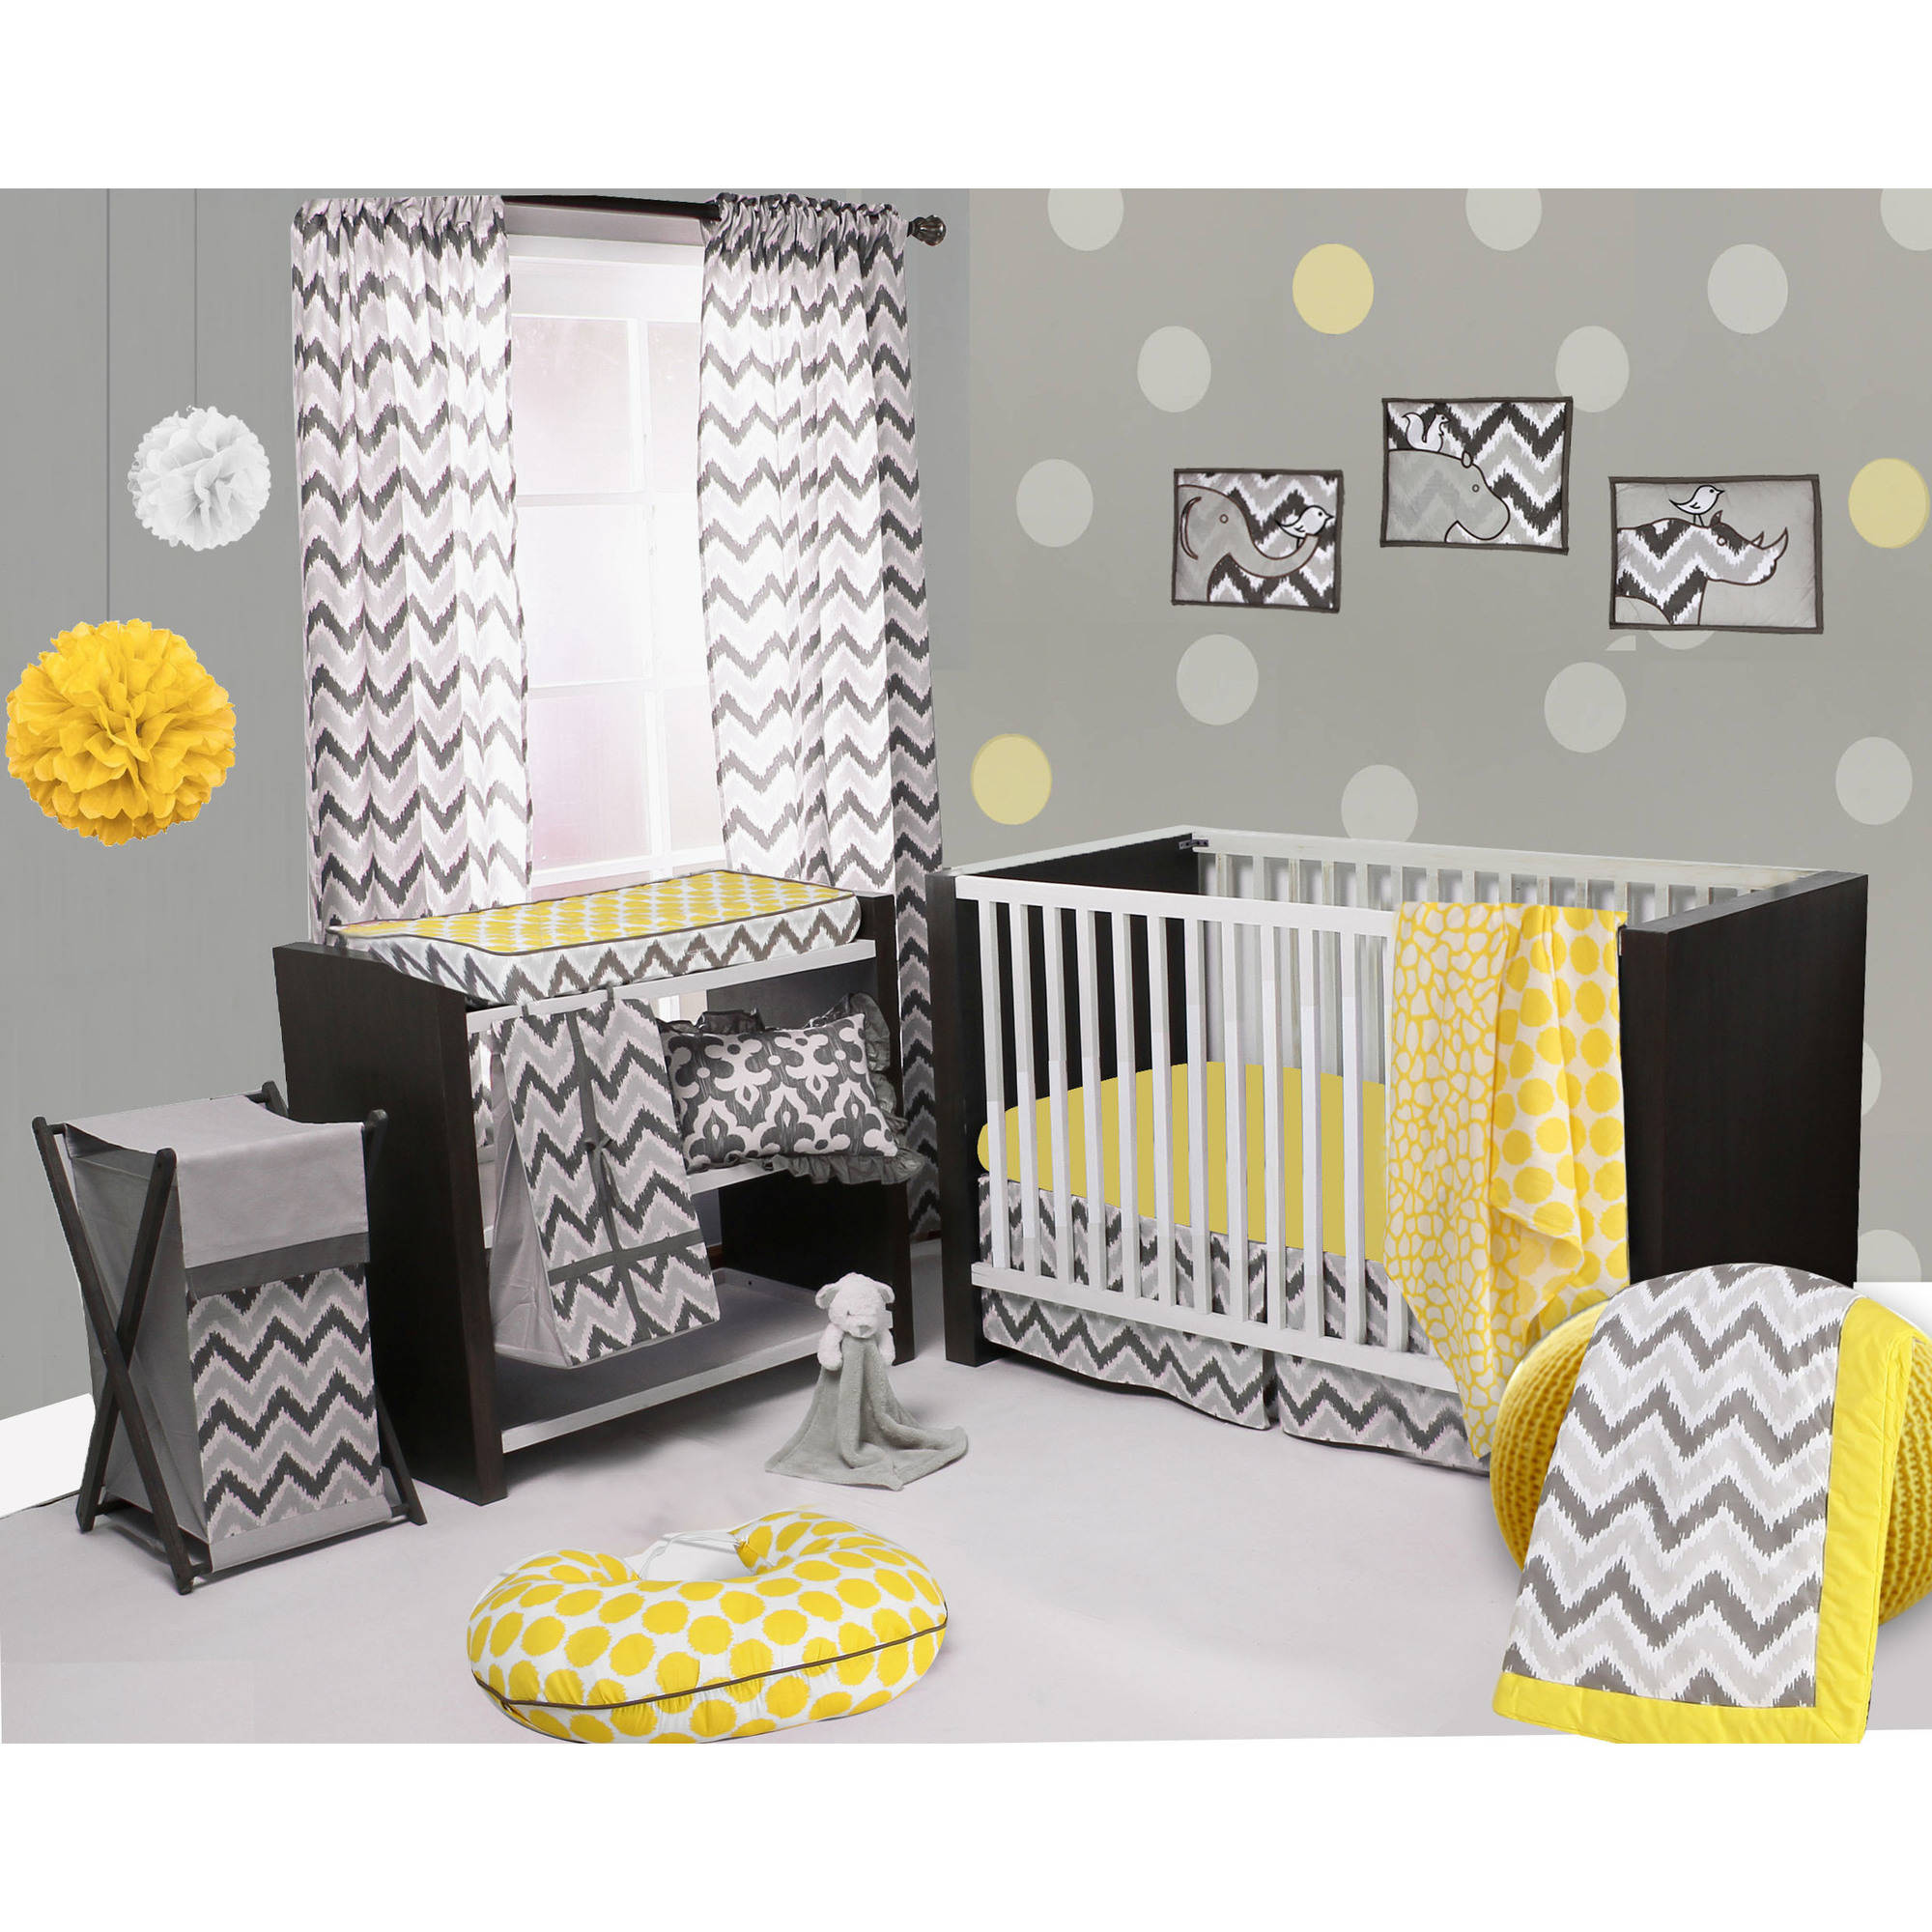 Bacati Ikat Yellow/grey Dots/giraffe 4 Crib Set with 2 Muslin Blankets